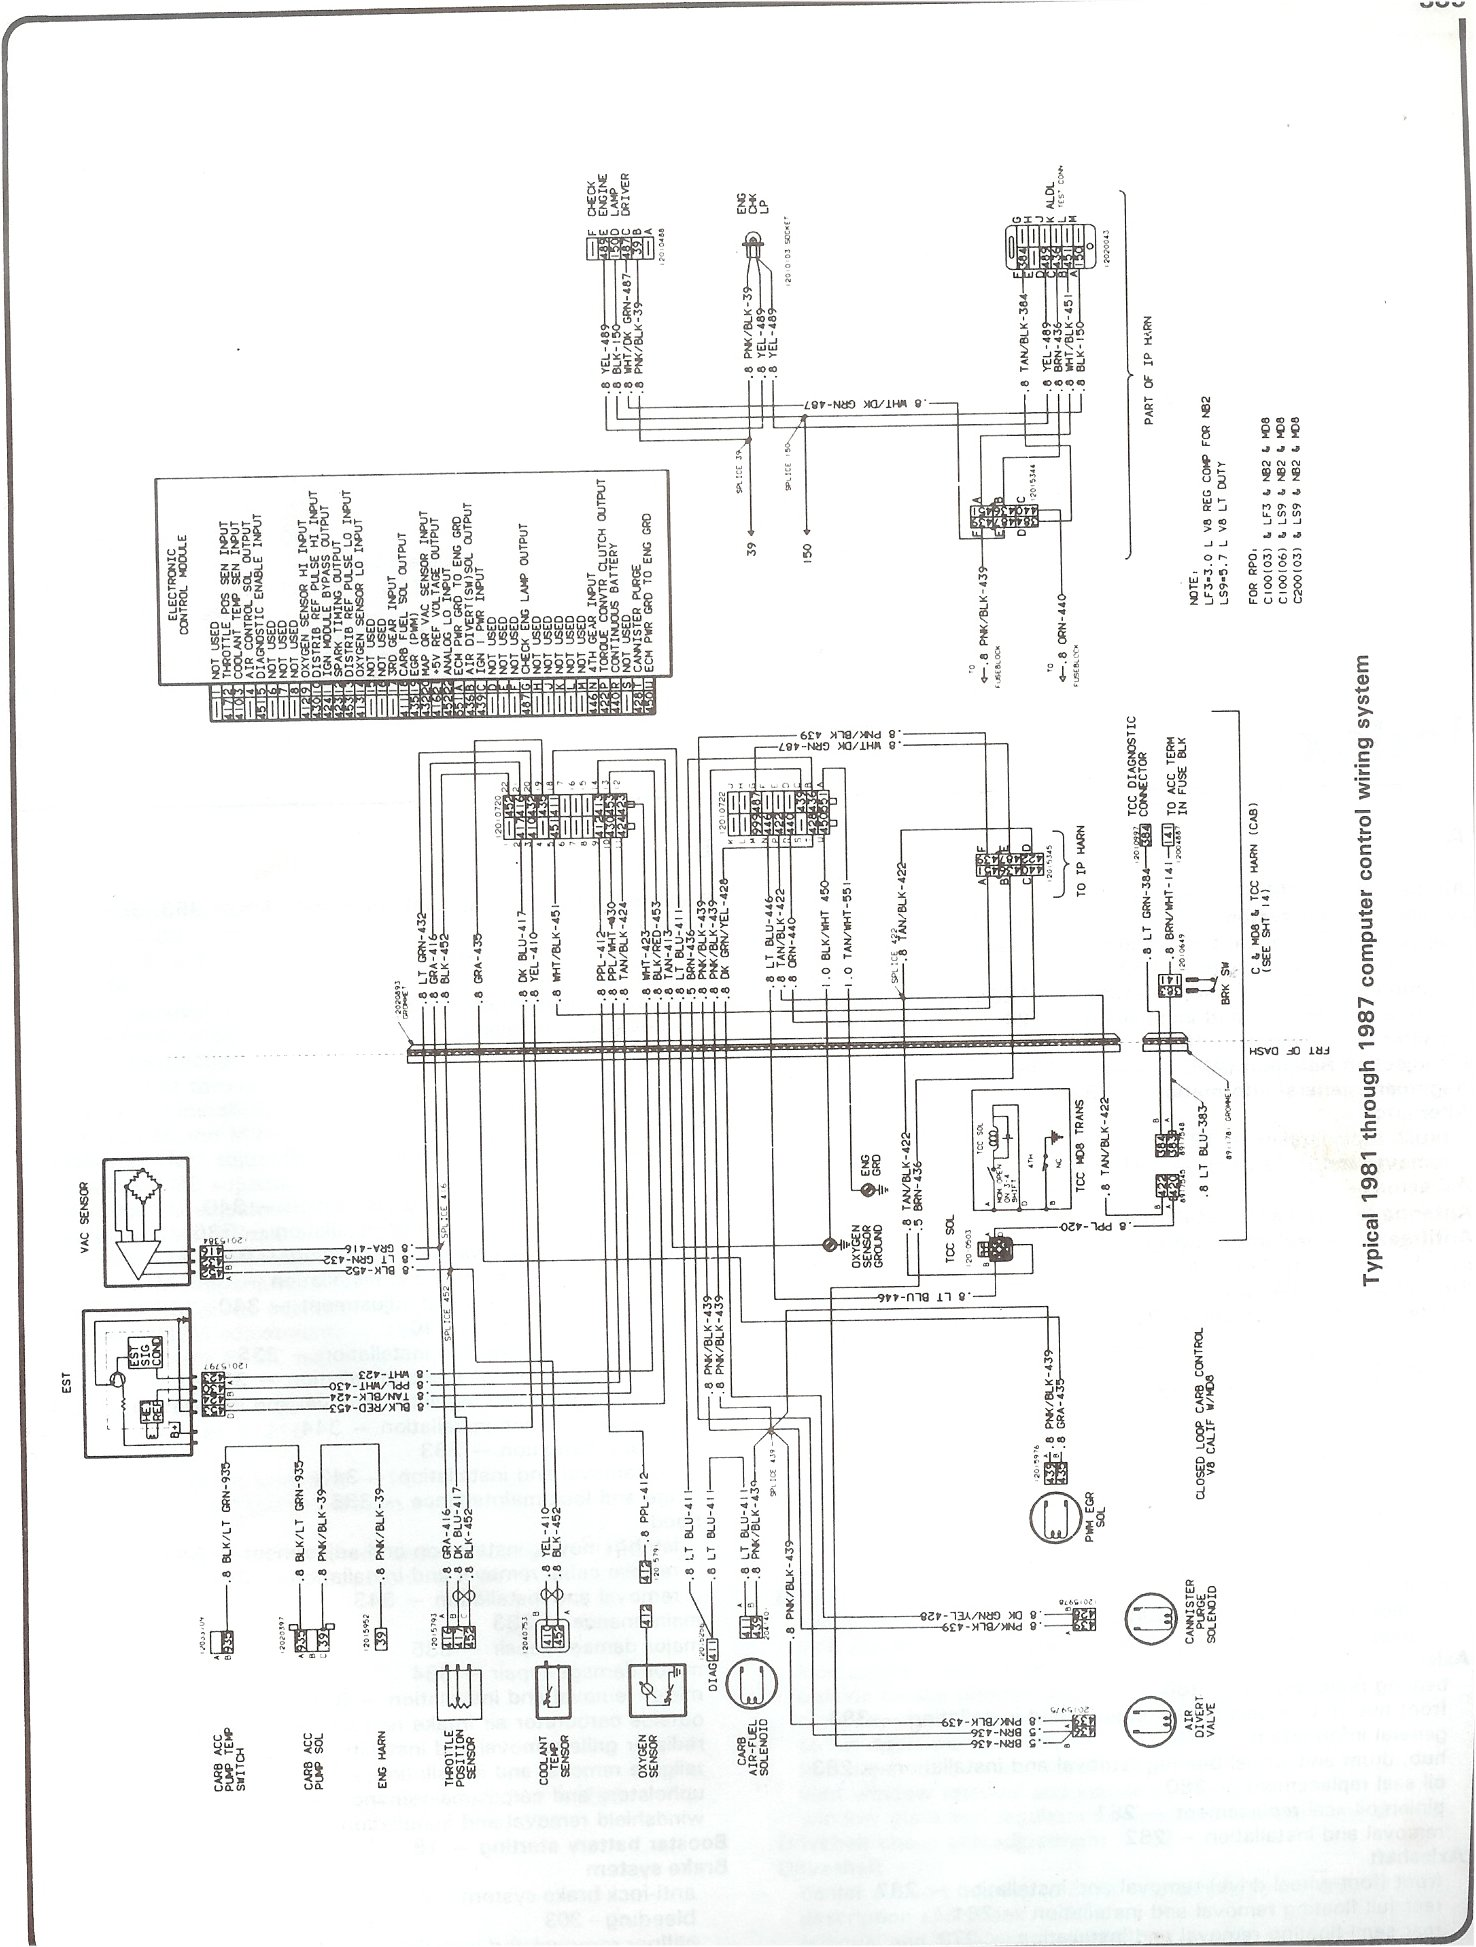 81 87_computer_control_wiring complete 73 87 wiring diagrams 1968 Chevy C10 Wiring-Diagram at fashall.co